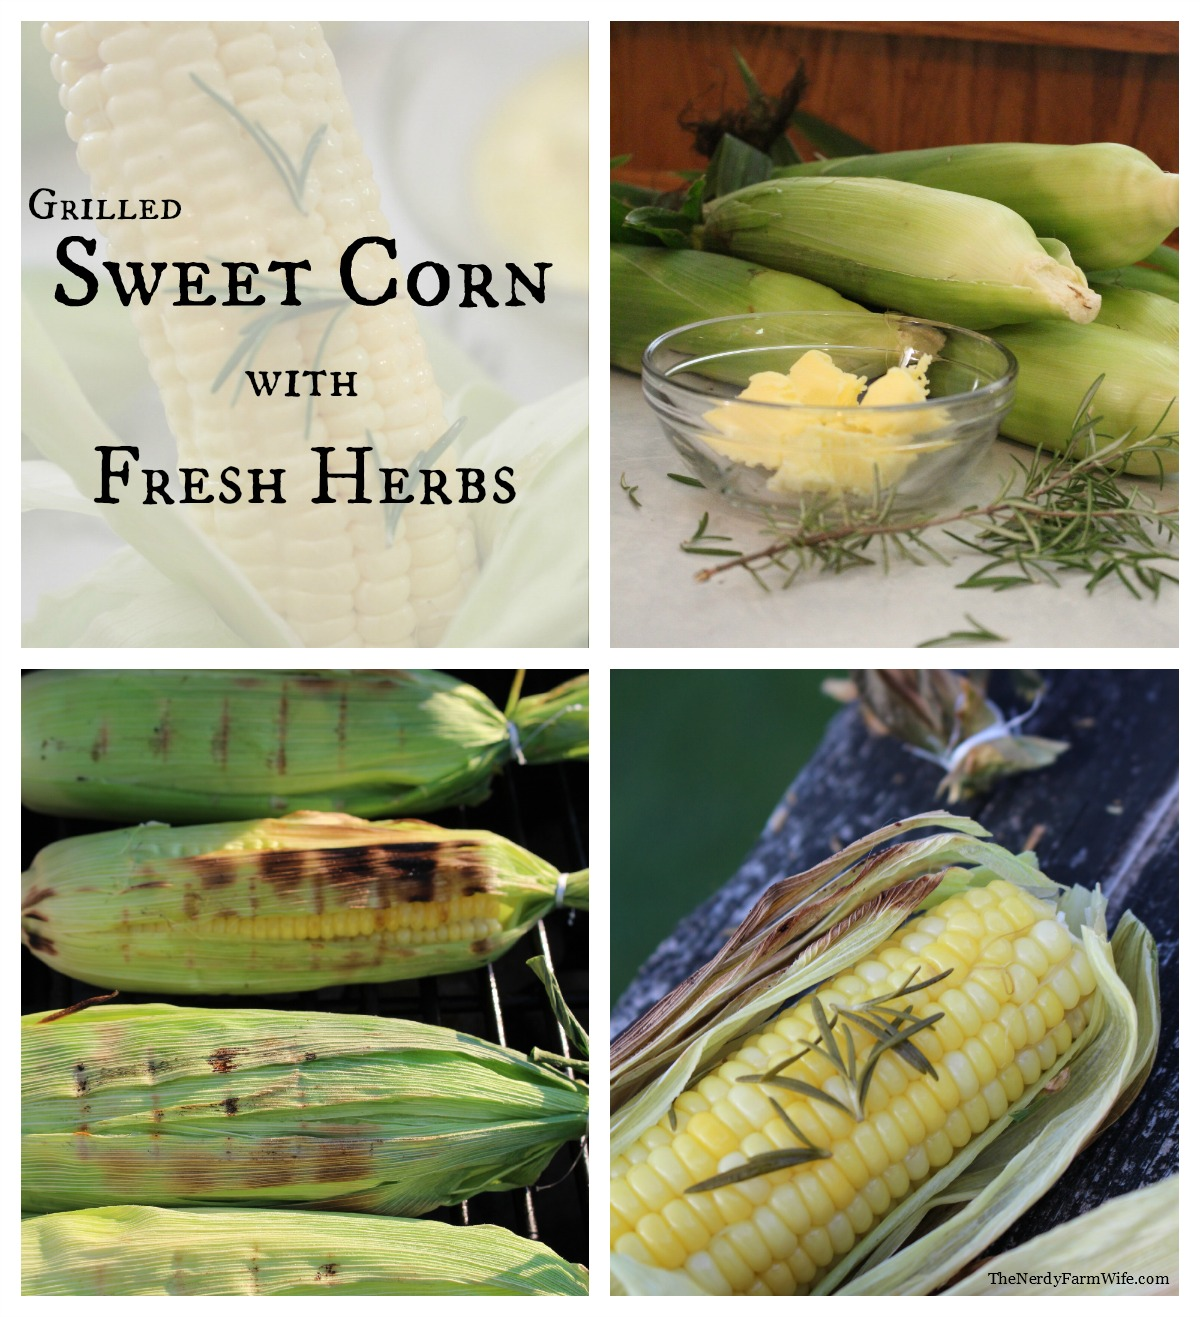 Grilled Sweet Corn with Fresh Herbs